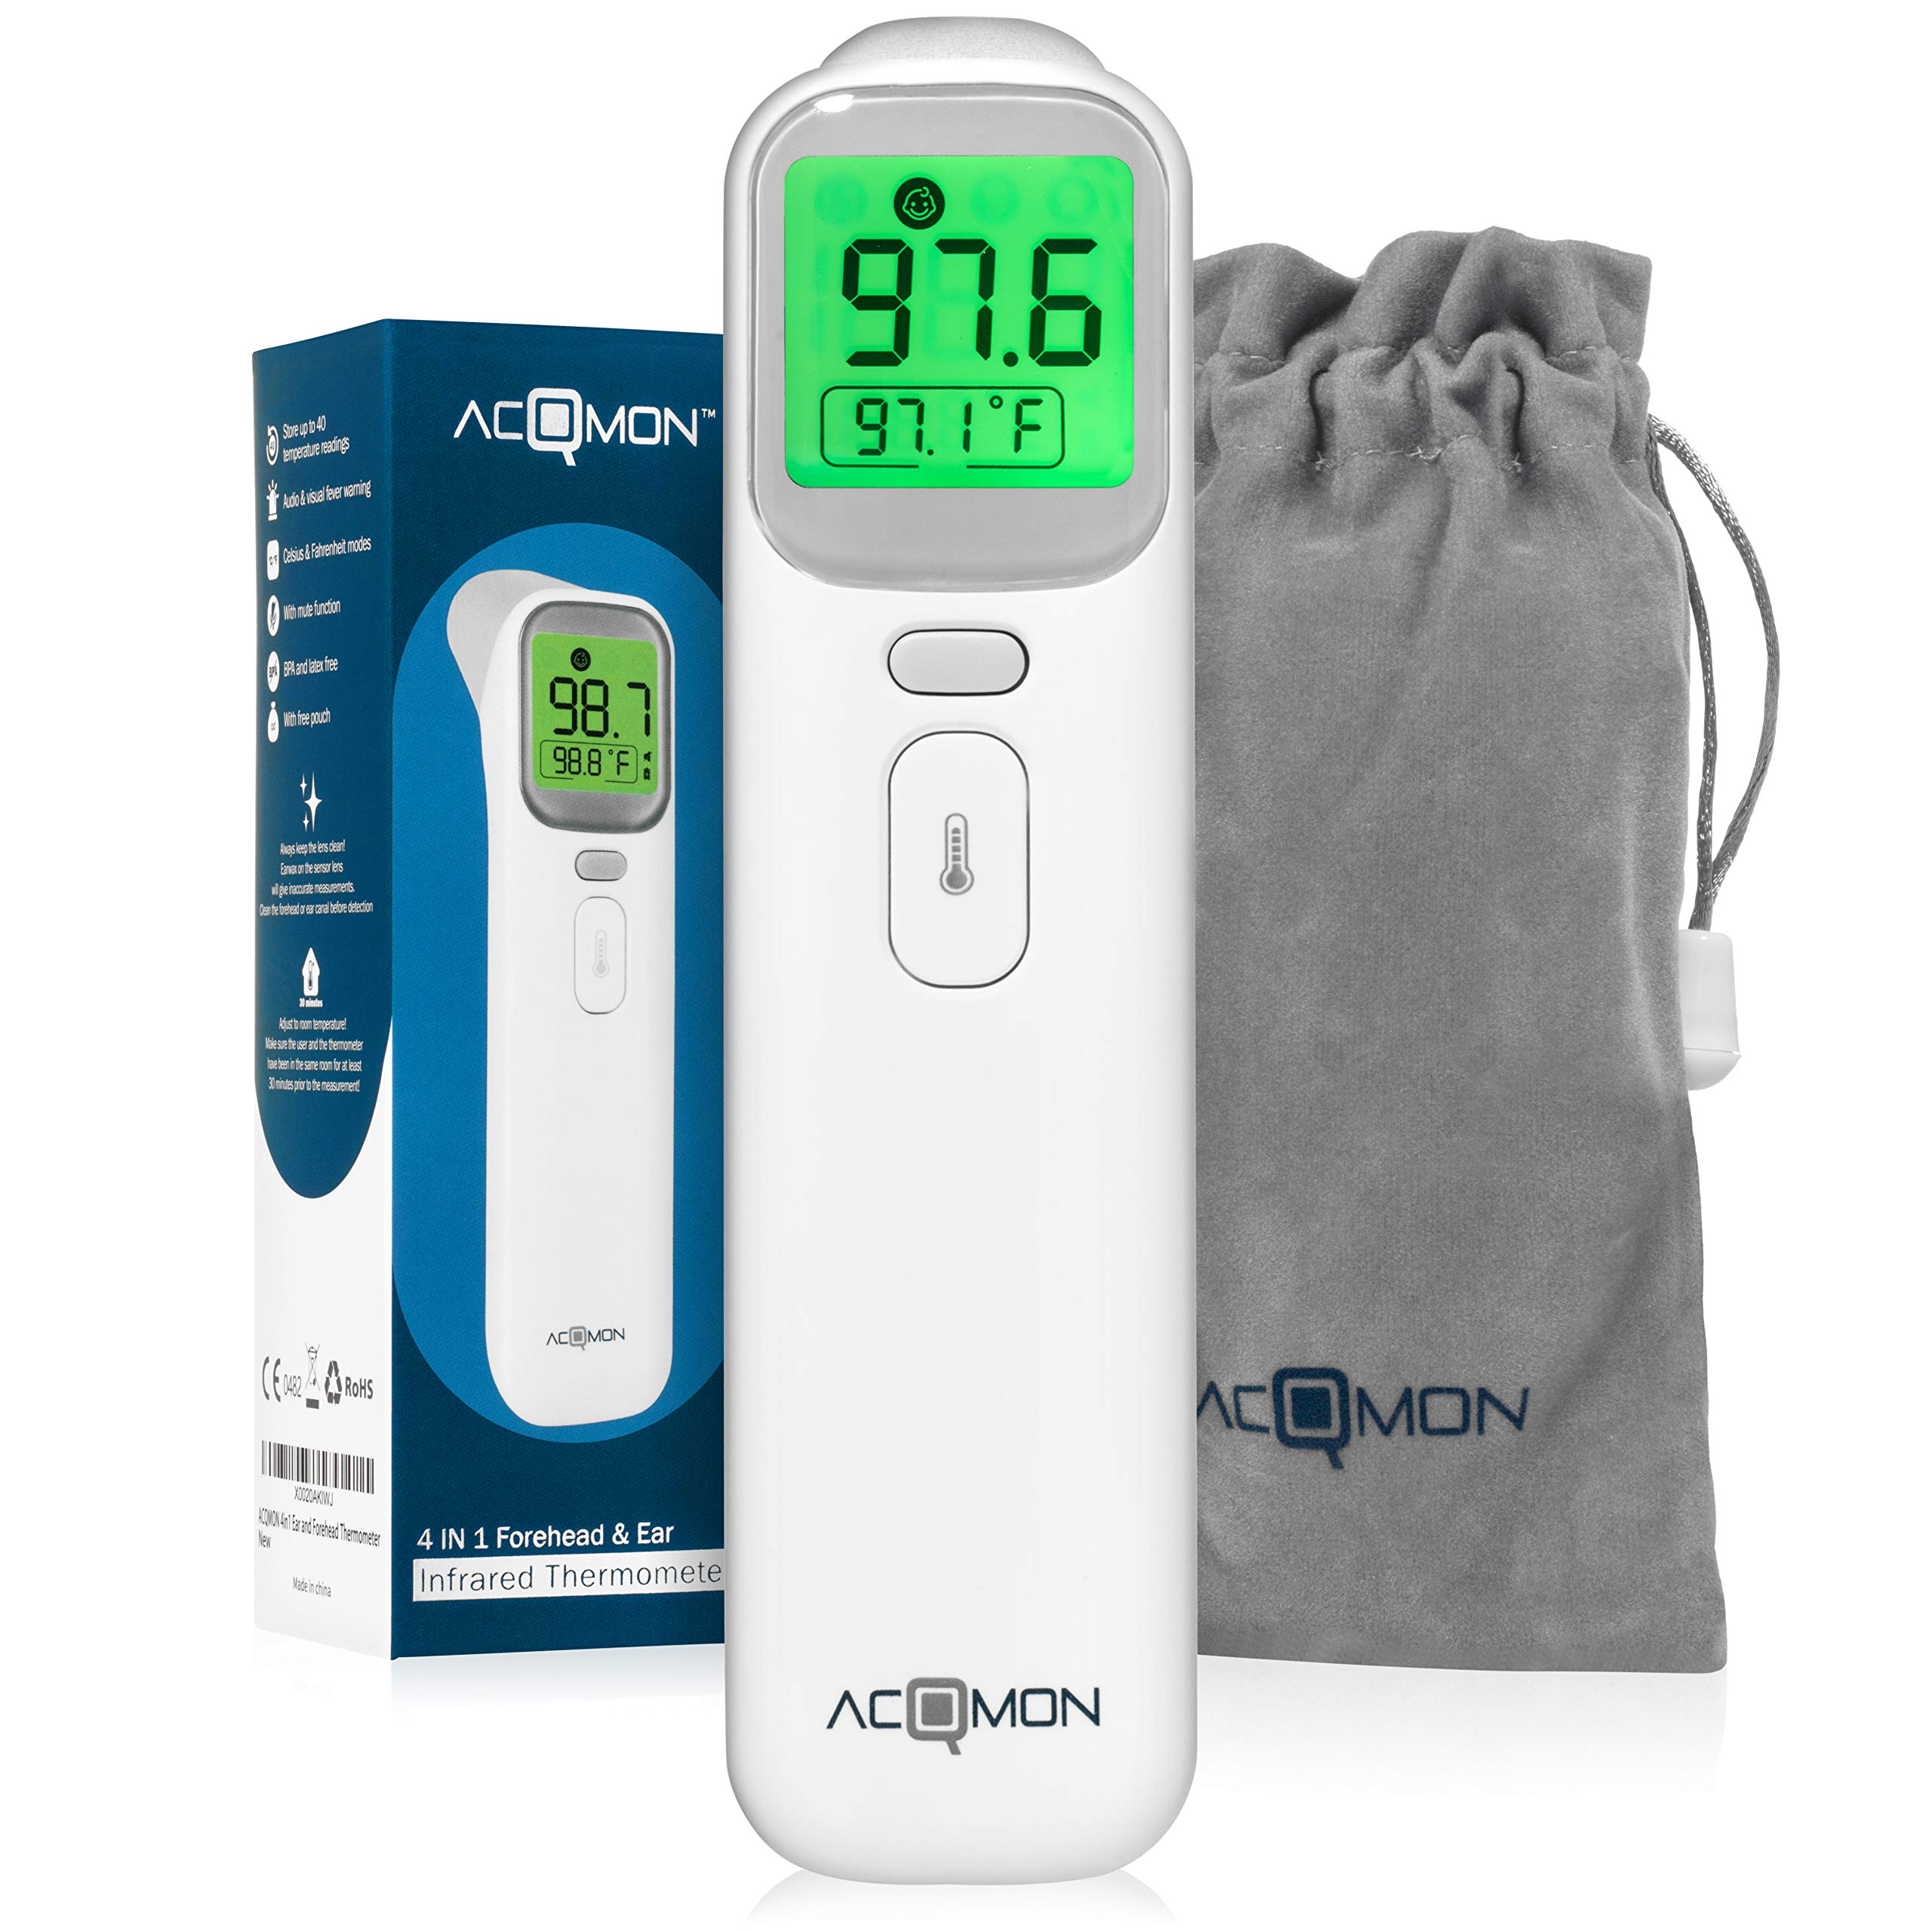 ACQMON Digital Ear Thermometer with Forehead Temporal Function - Medically Approved Technology for Baby, Child & Adults with Object Mode